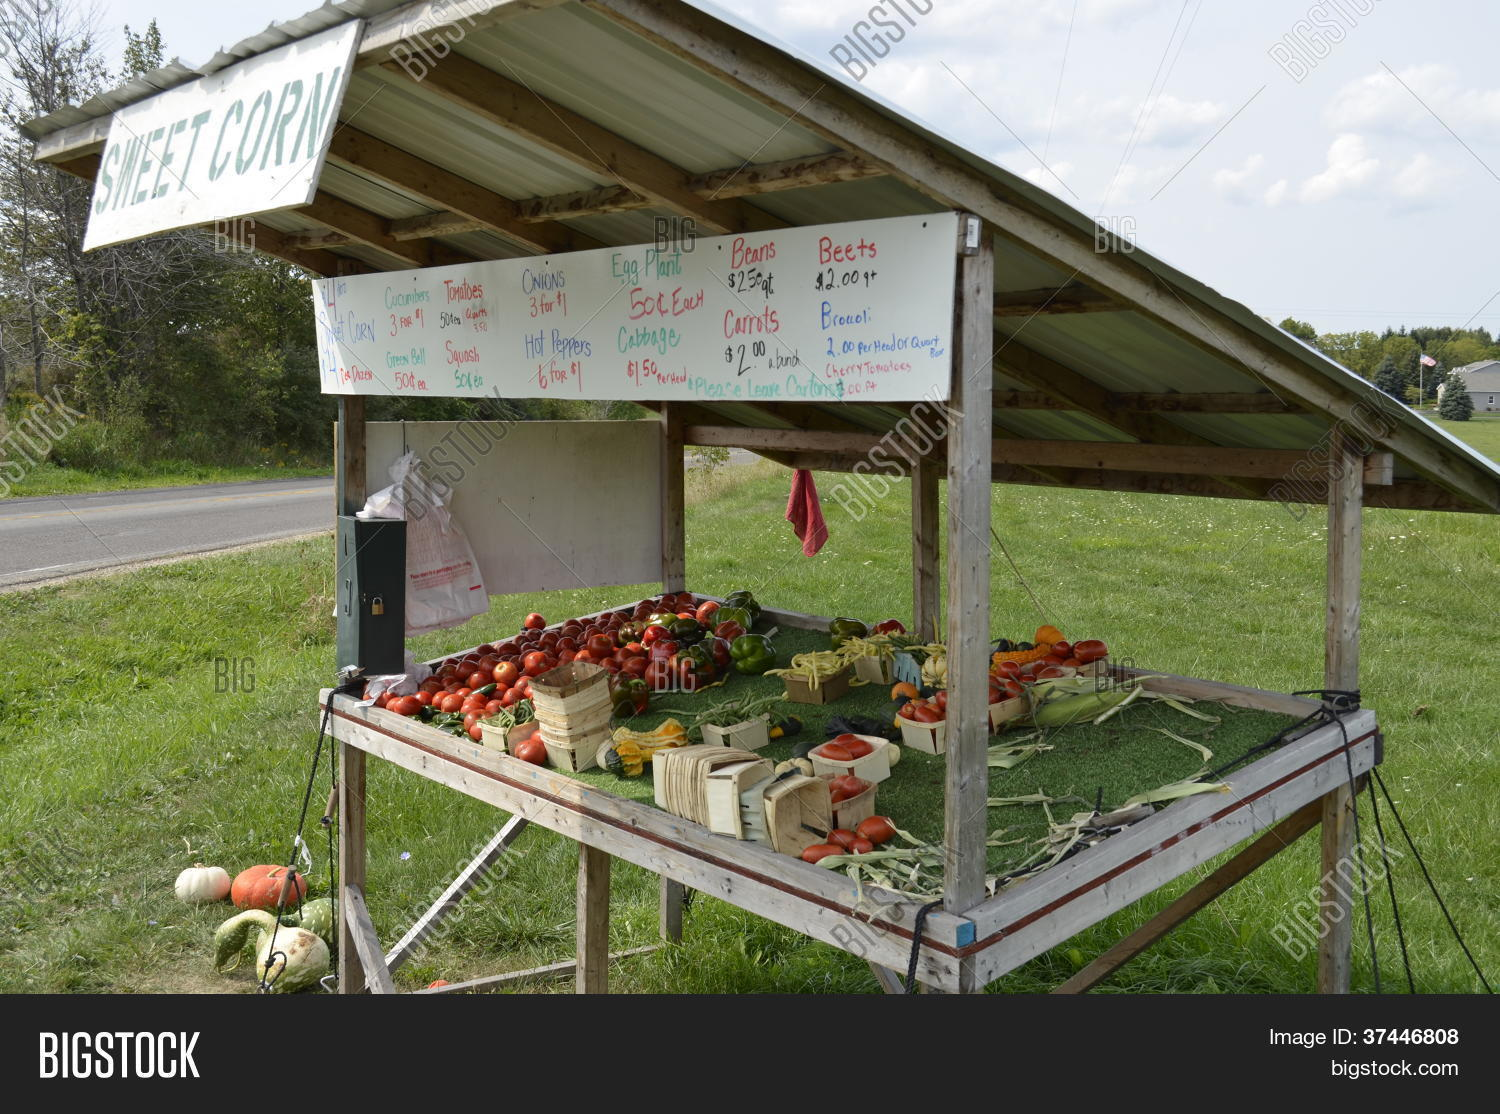 Vegetable Stand Designs : Roadside produce stand plans year of clean water